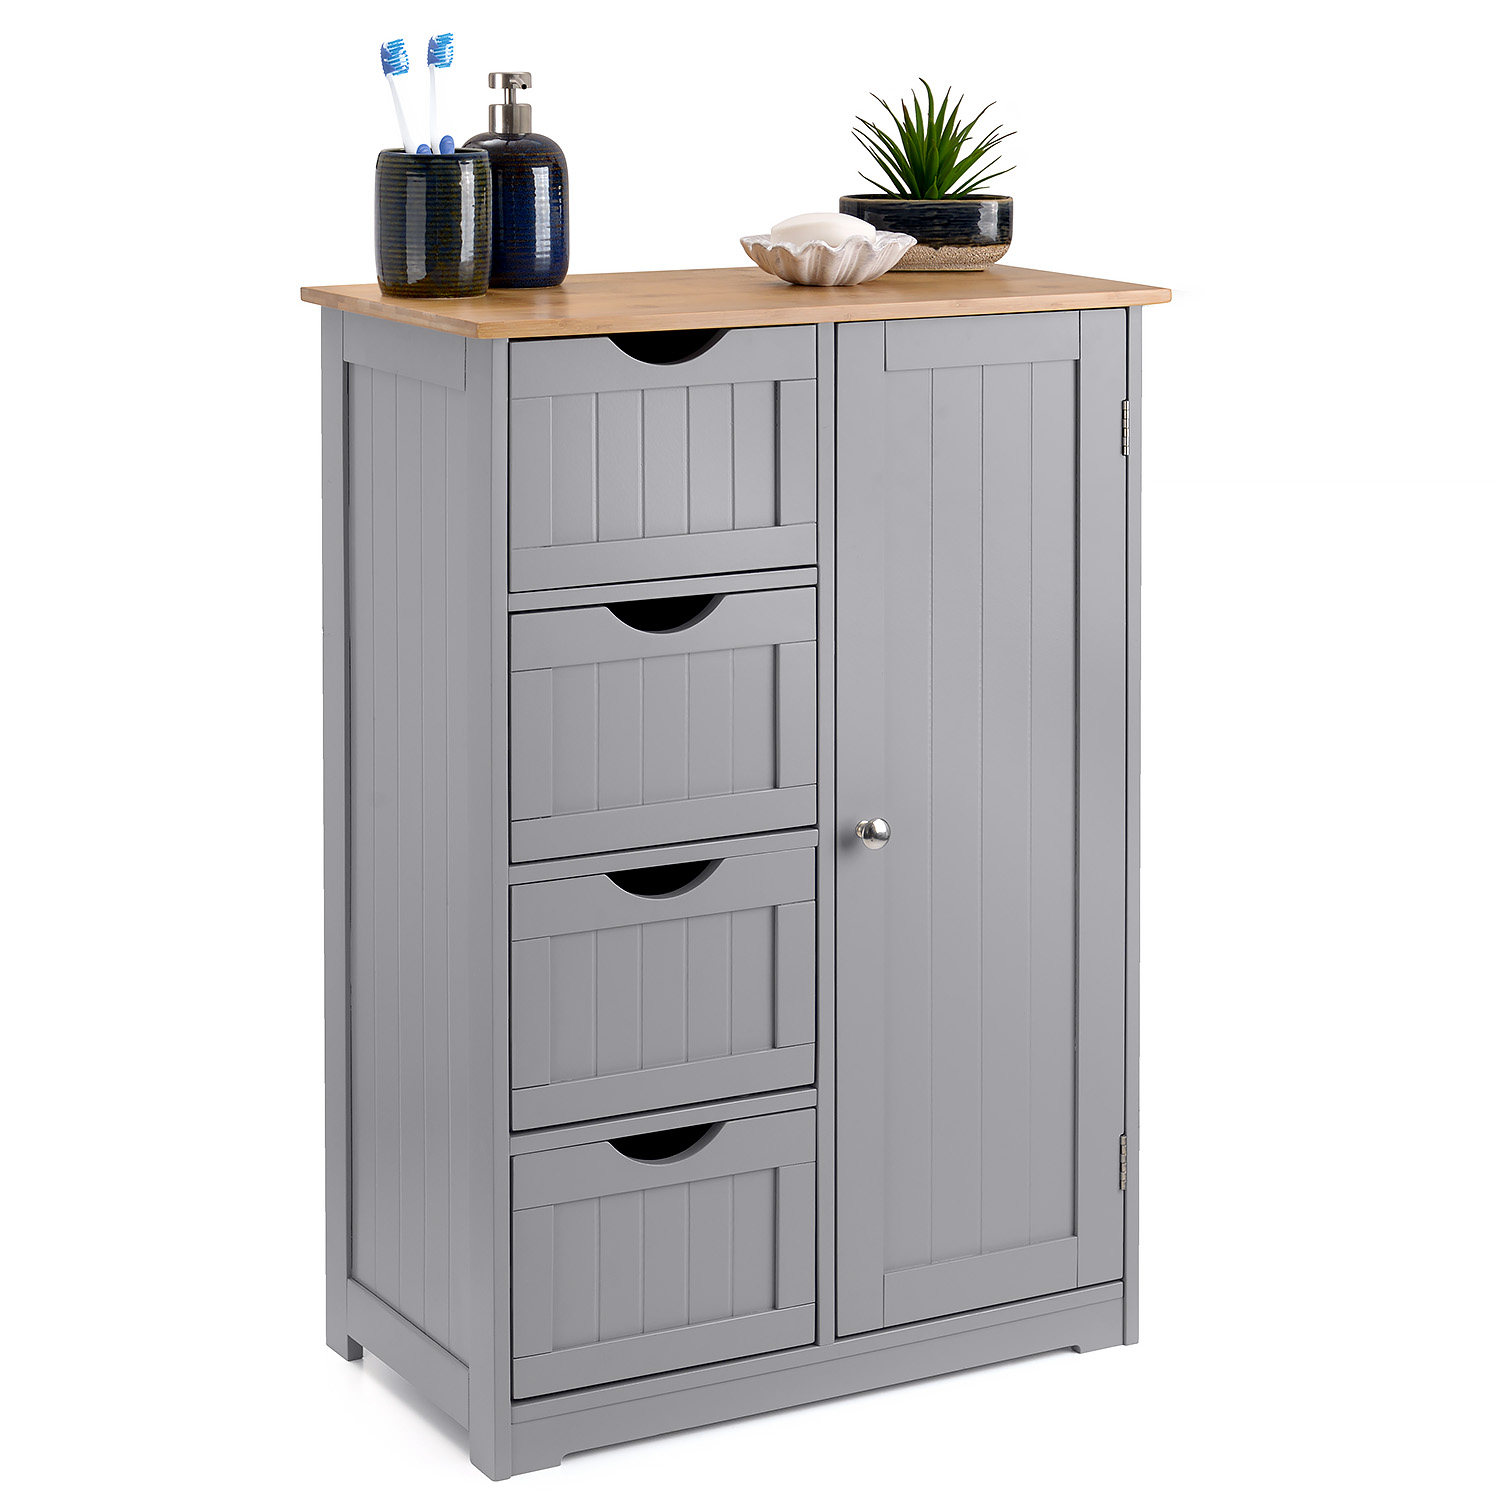 Image of Grey & Bamboo 4 Drawer Cabinet